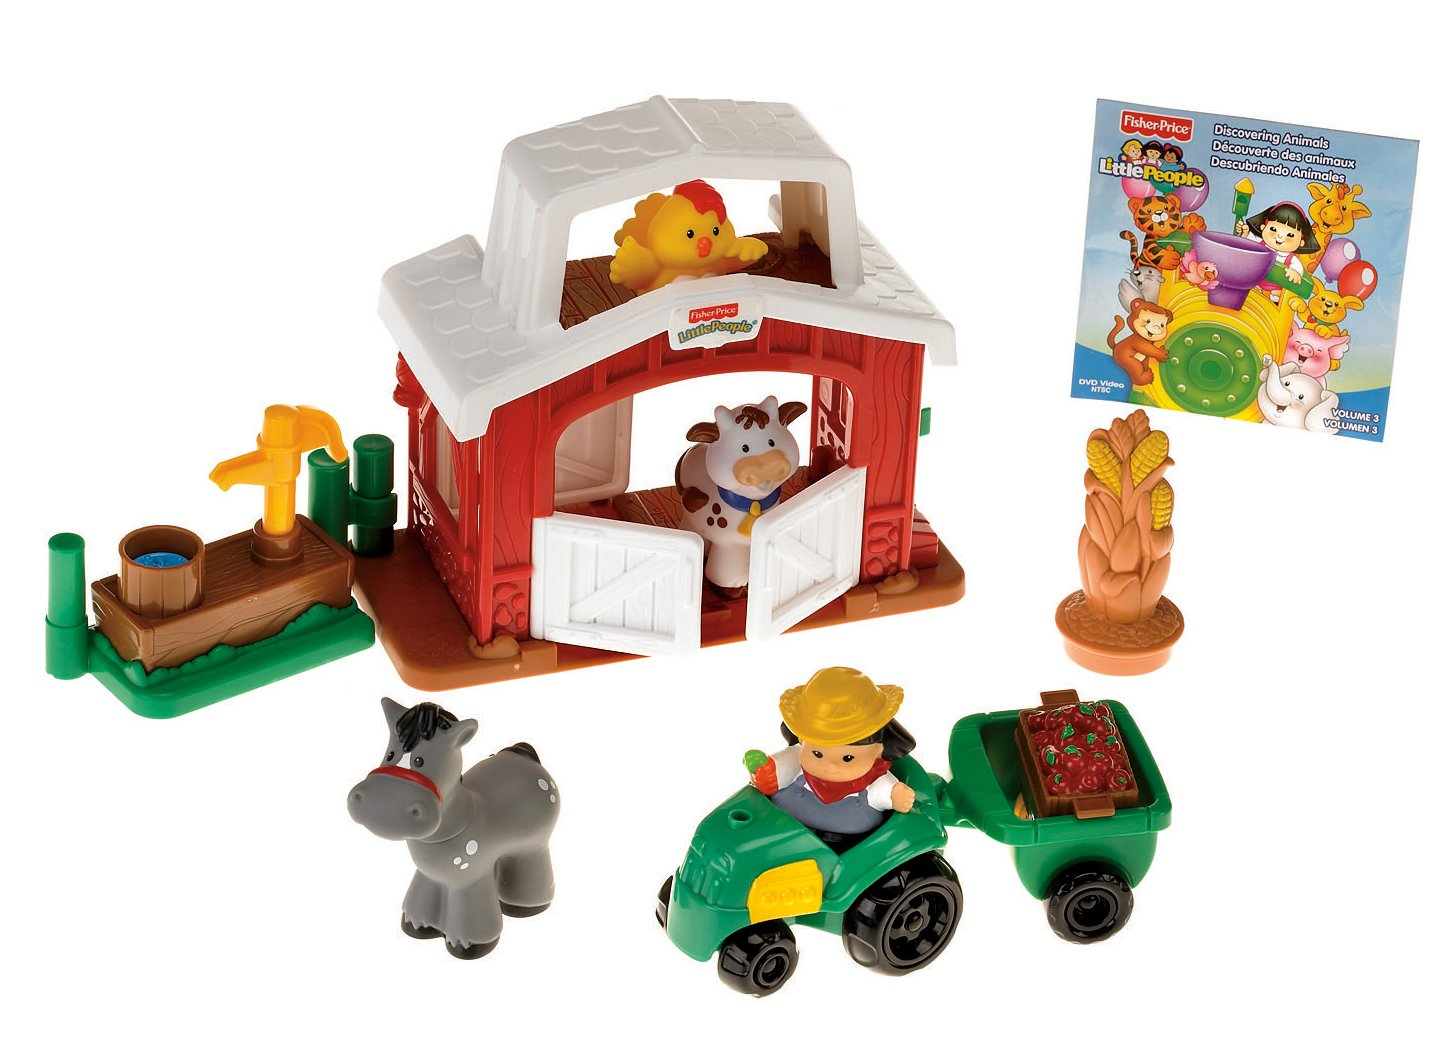 Toys for Christmas: The Farm of Little People